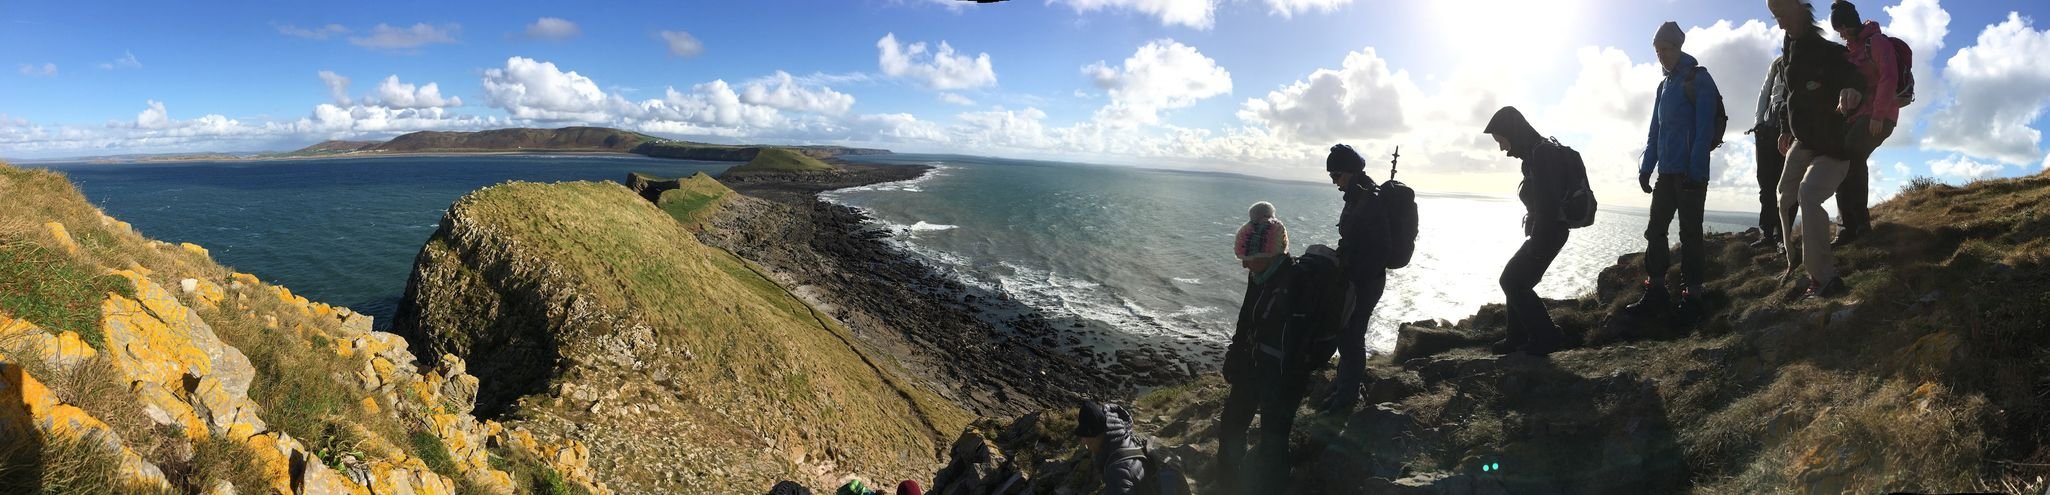 Rhossili Bay Worm's Head Explorers Gower Peninsula Wales Beauty In Nature Cliff Cloud - Sky Day Landscape Nature Outdoors Panoramic People Rock - Object Scenics Sea Sky Walkers Water Worms Head